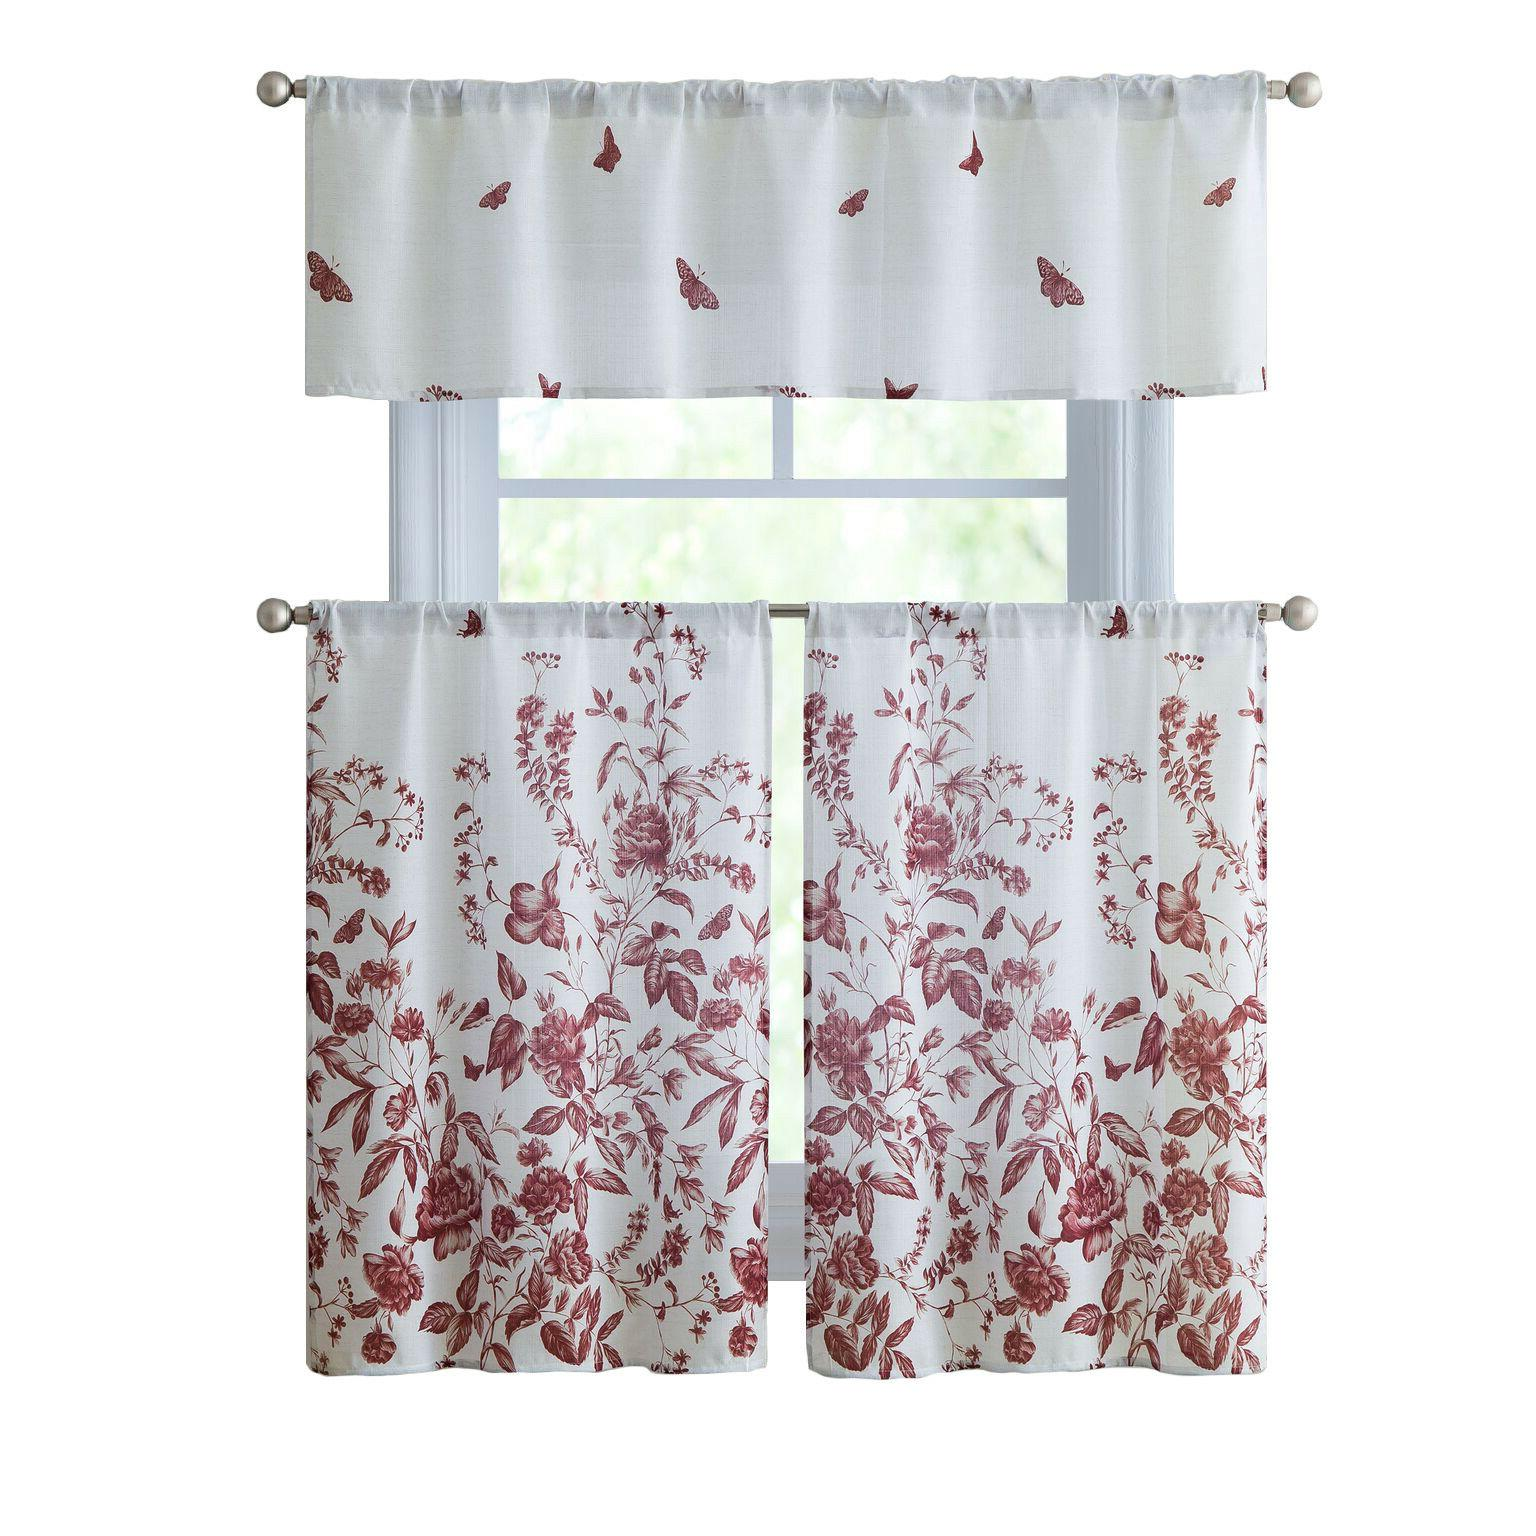 Kate Aurora Living Floral Kitchen Curtain Tier & Valance Set